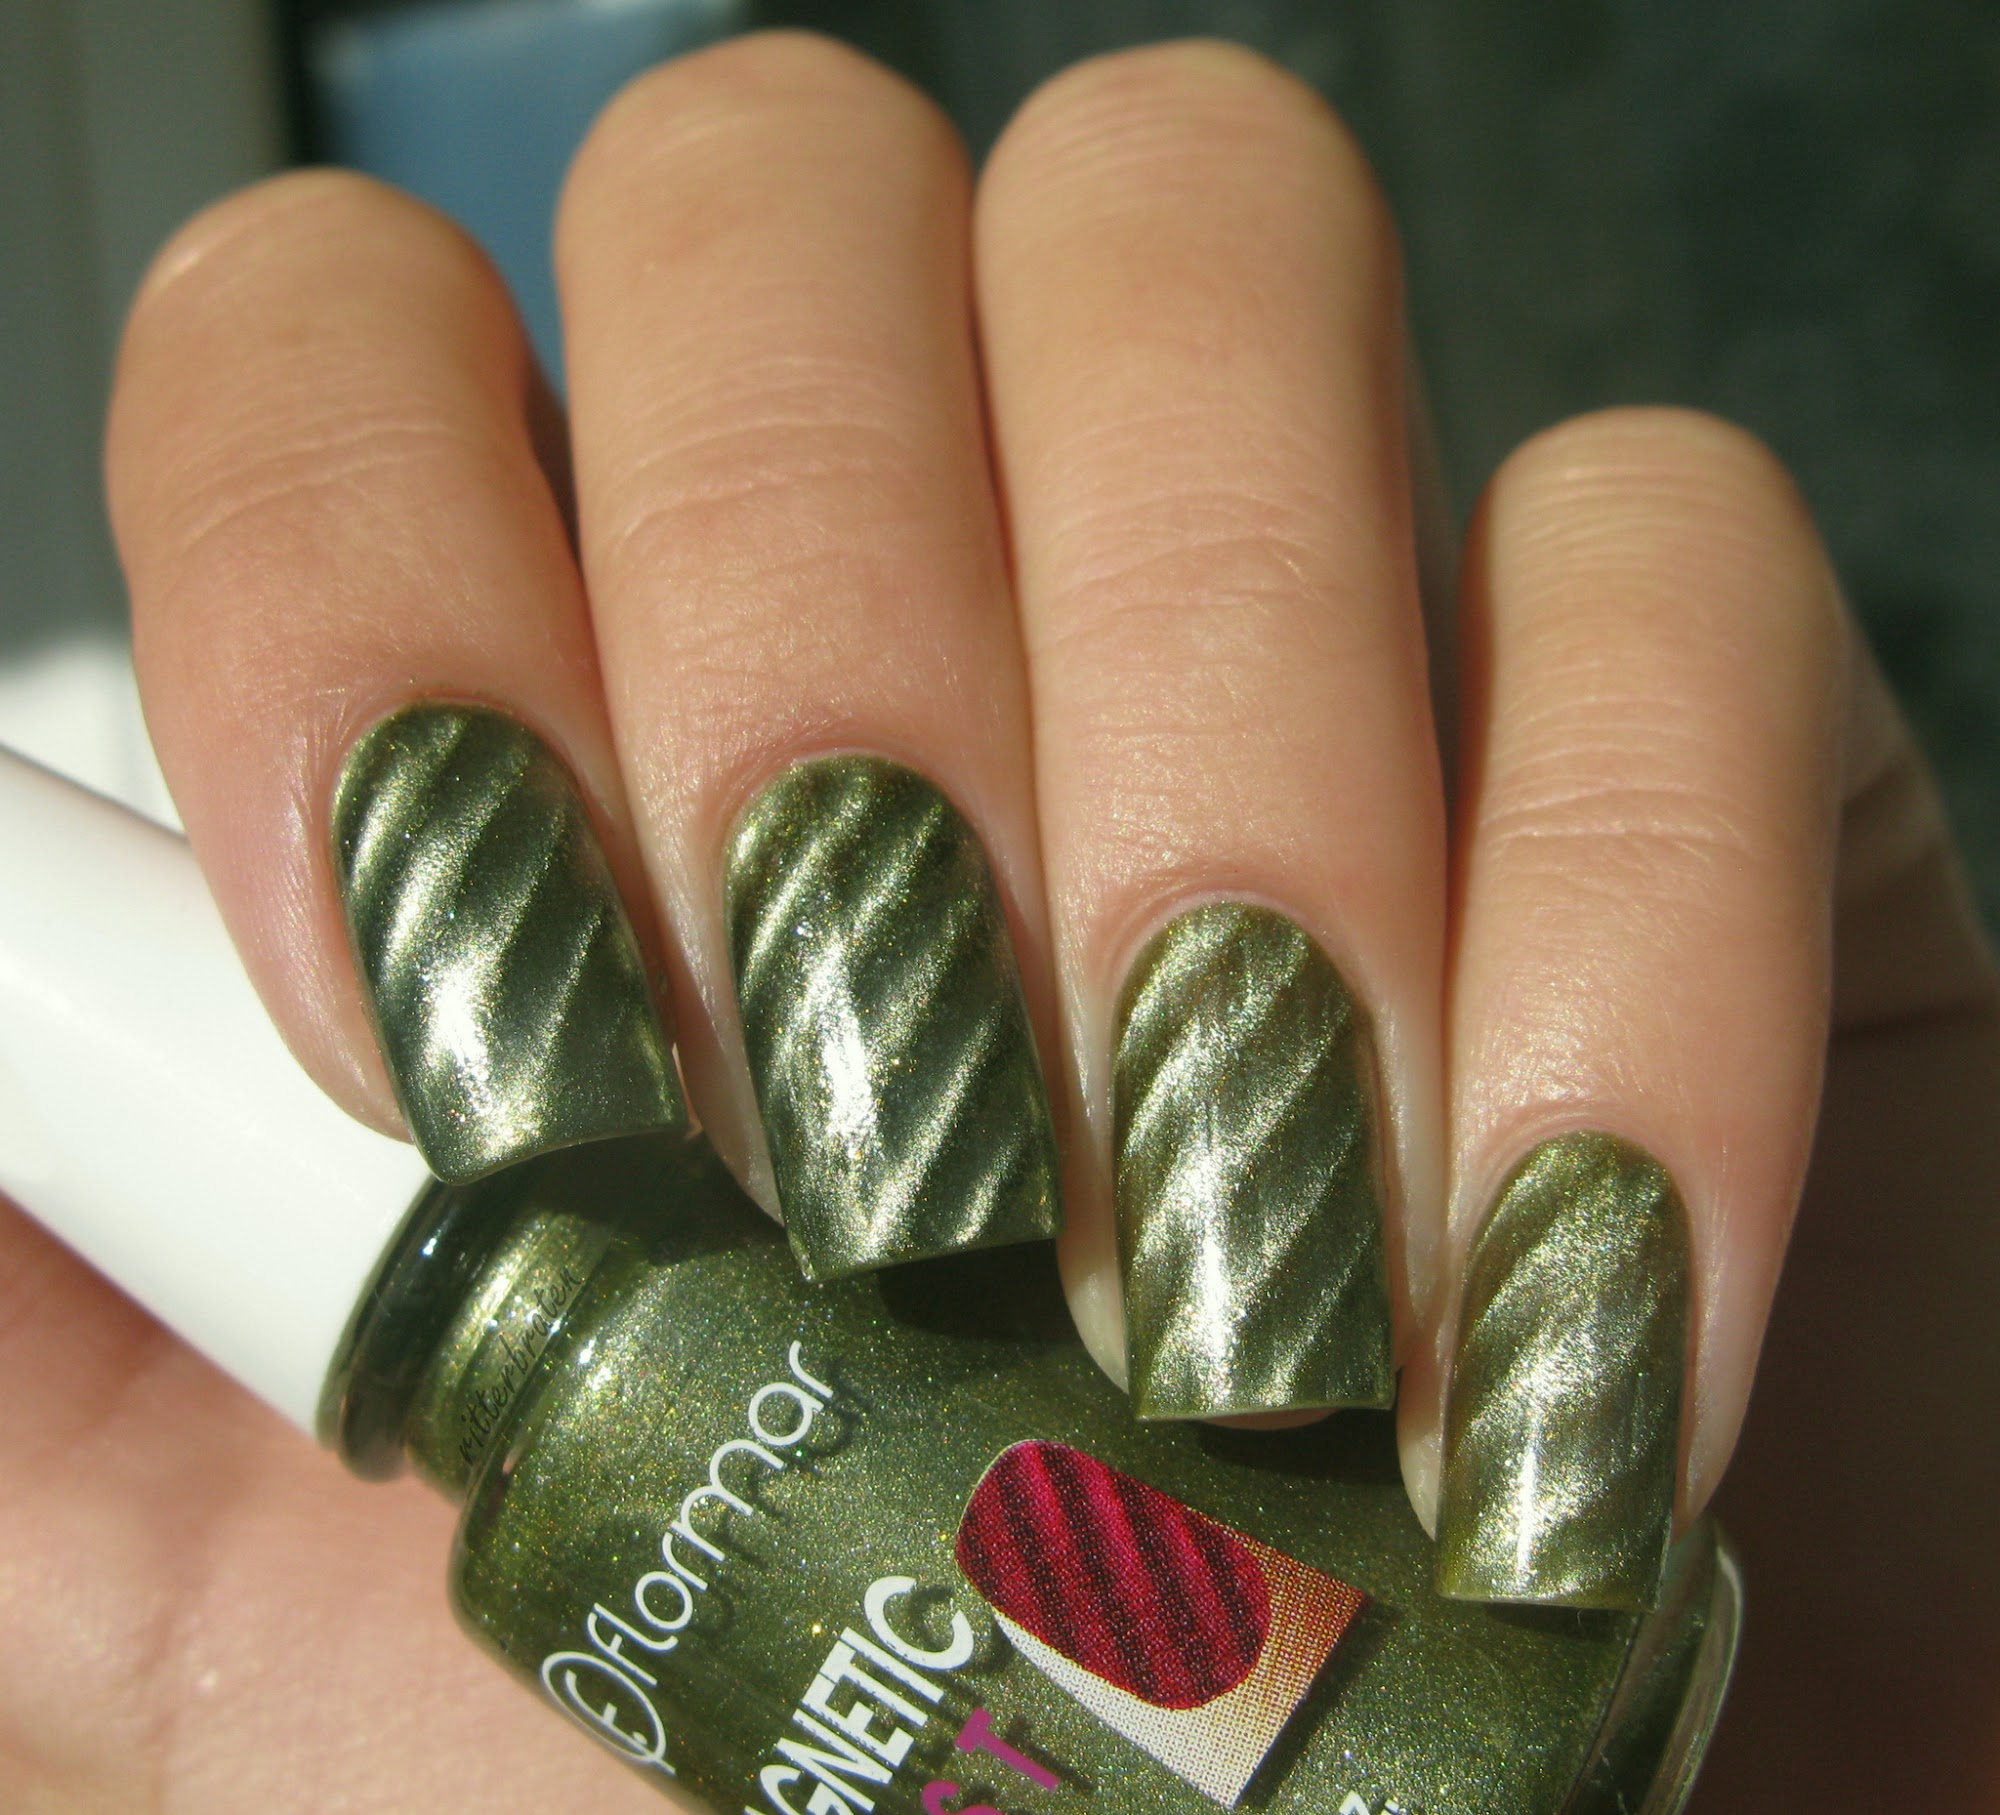 Flormar Magnetic Twist MG02